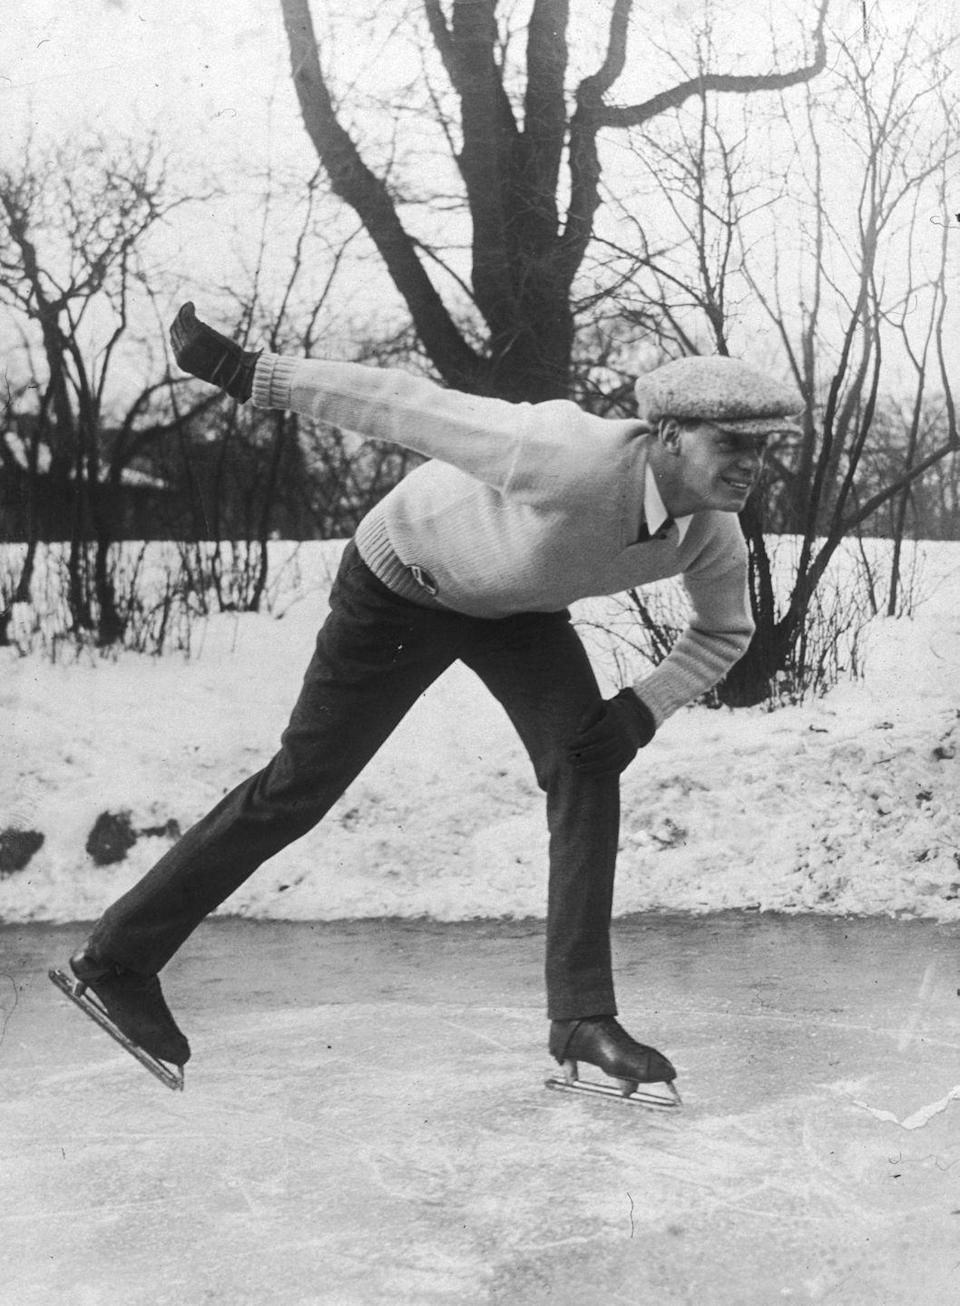 "<p>Tarzan actor, Johnny Weissmuller, spends the day ice skating on a pond in 1925. The Hungarian-born actor <a href=""https://www.olympic.org/johnny-weissmuller"" rel=""nofollow noopener"" target=""_blank"" data-ylk=""slk:won five Olympic gold medals"" class=""link rapid-noclick-resp"">won five Olympic gold medals</a> for swimming before venturing to Hollywood. </p>"